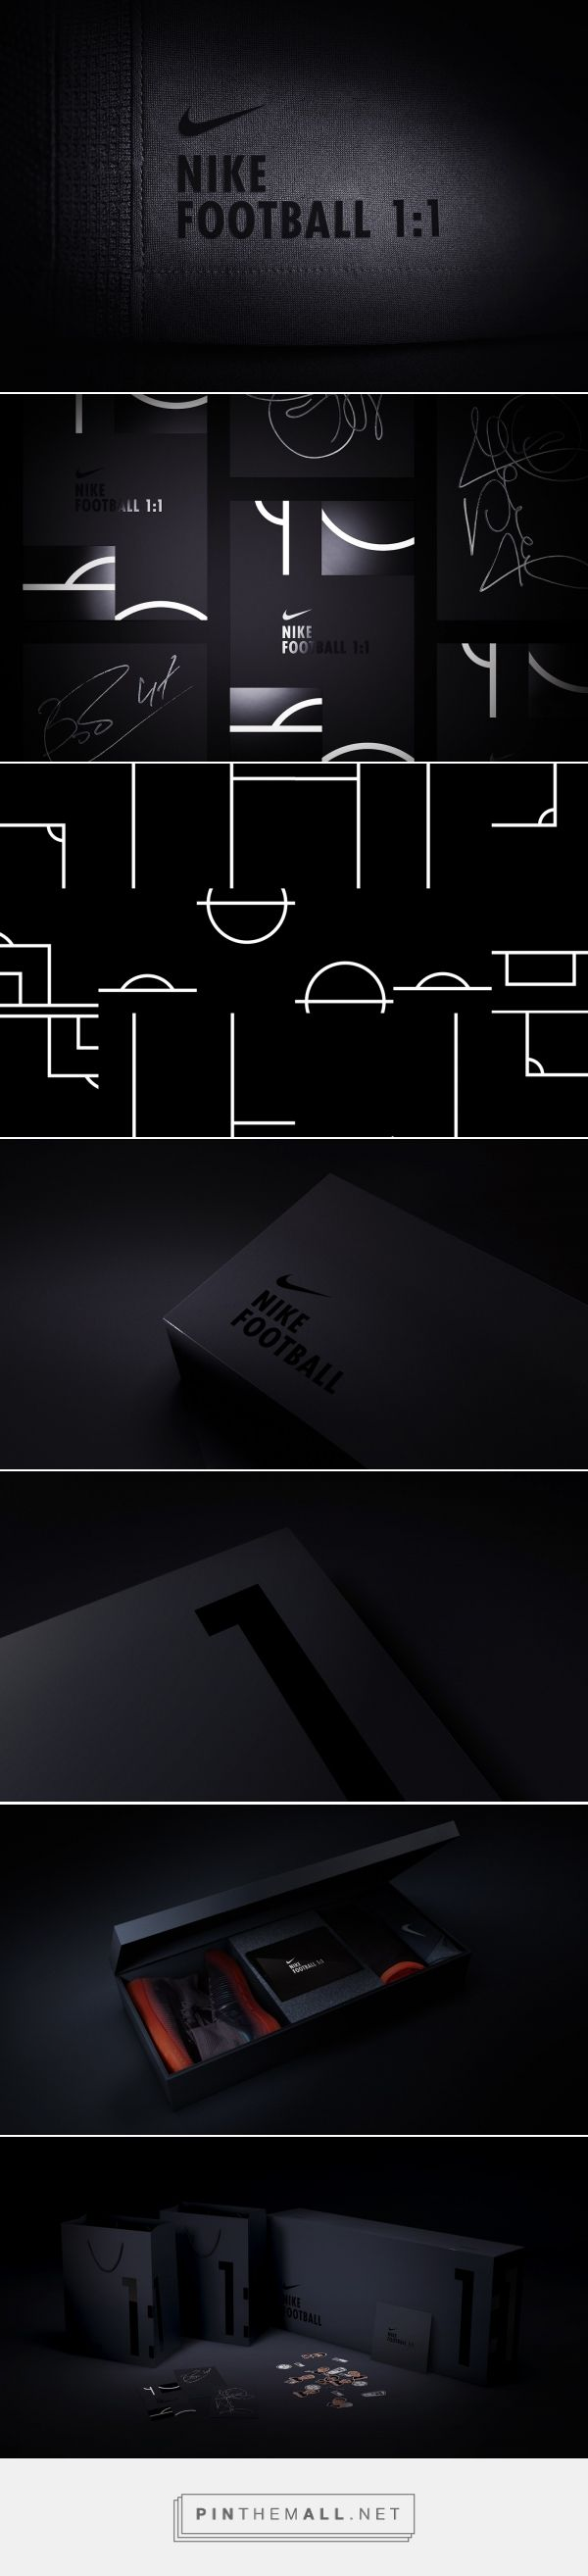 Nike 1:1 - personal session with Nike expert - packaging design by Free.creative - https://www.packagingoftheworld.com/2018/04/nike-11.html